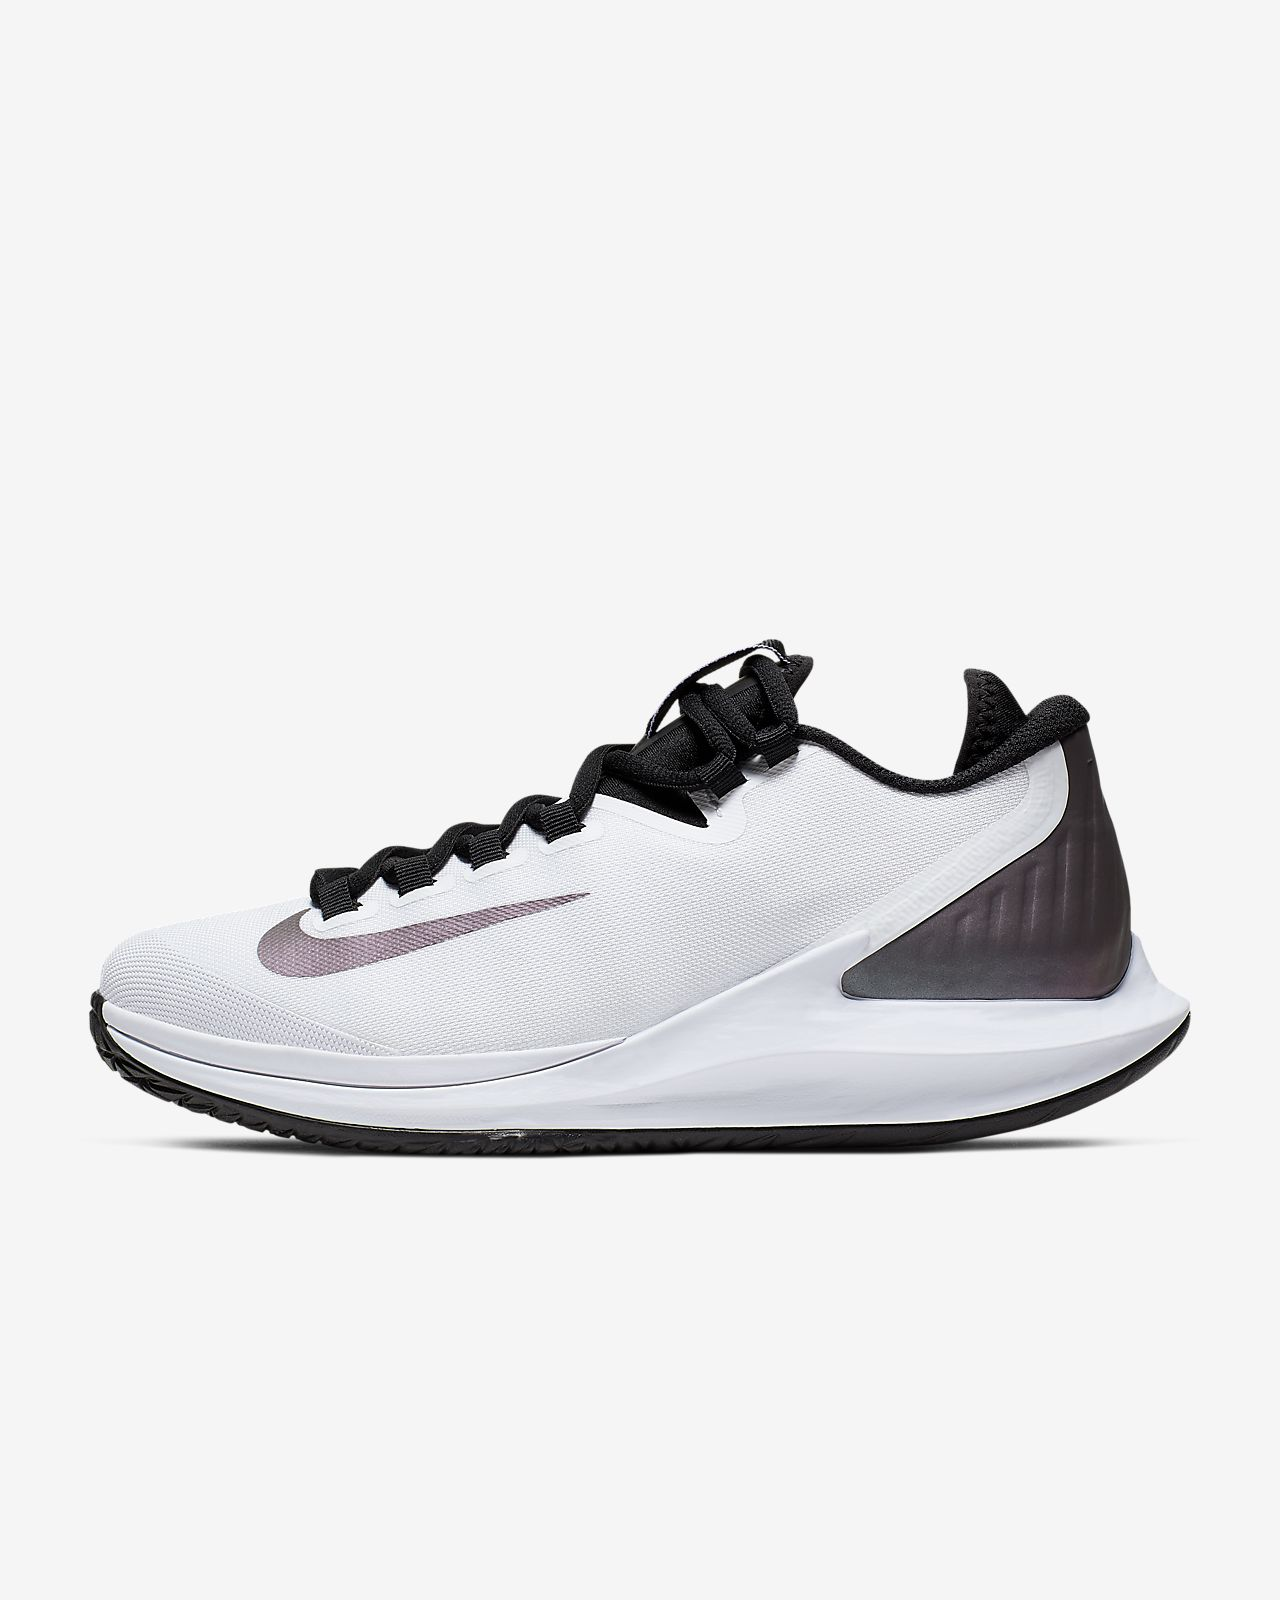 NikeCourt Air Zoom Zero Tennisschoen voor dames